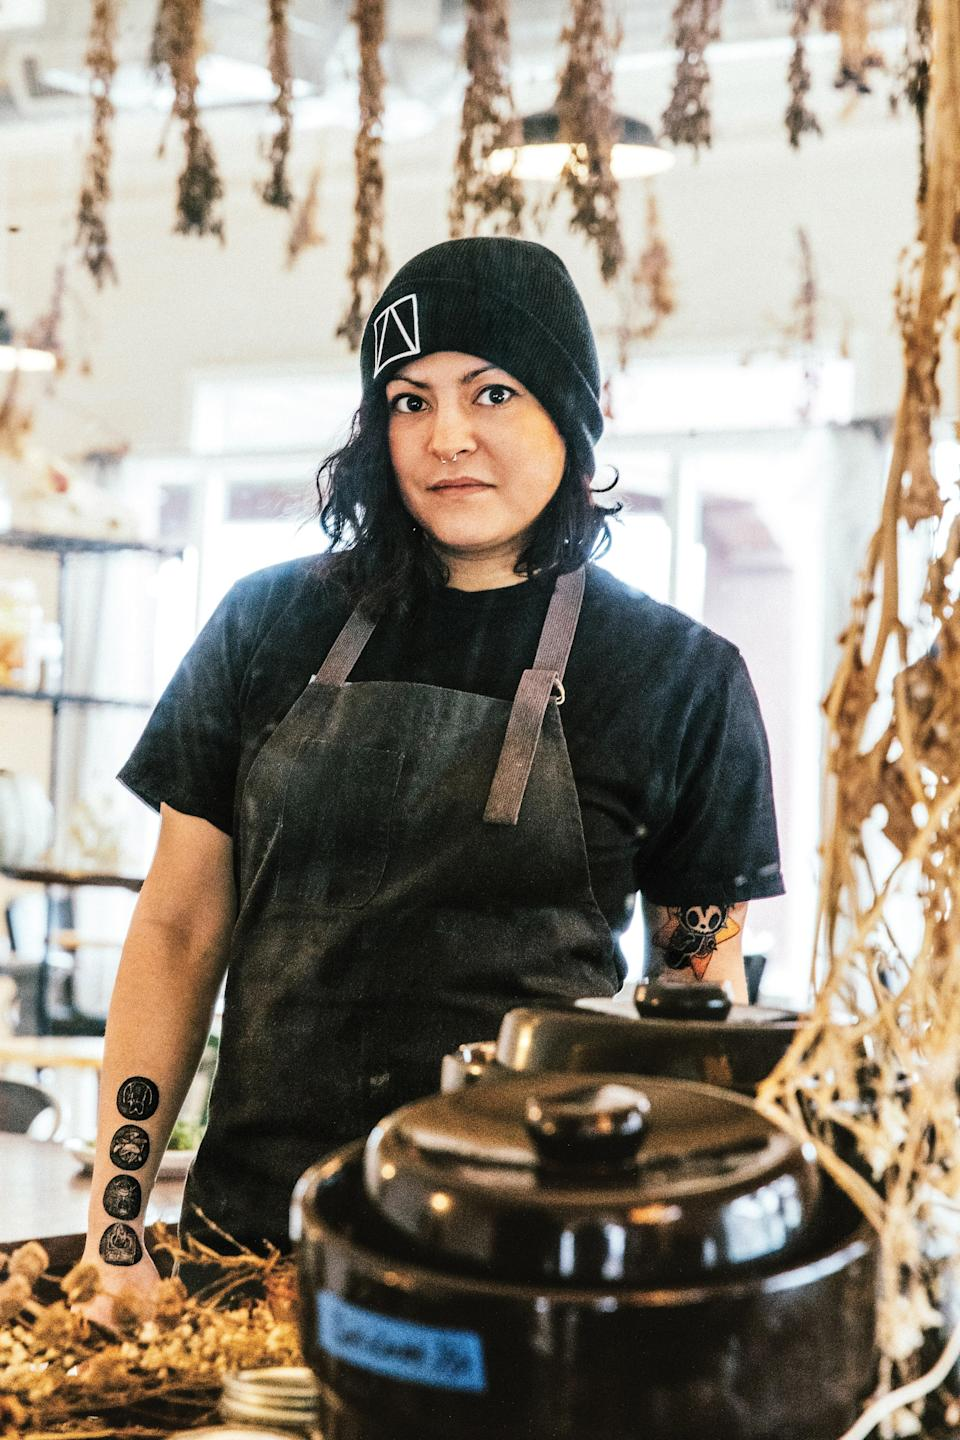 "<div class=""caption""> Misti Norris, chef/owner of Petra and the Beast in Dallas, TX </div> <cite class=""credit"">Photo by Samantha Jane</cite>"